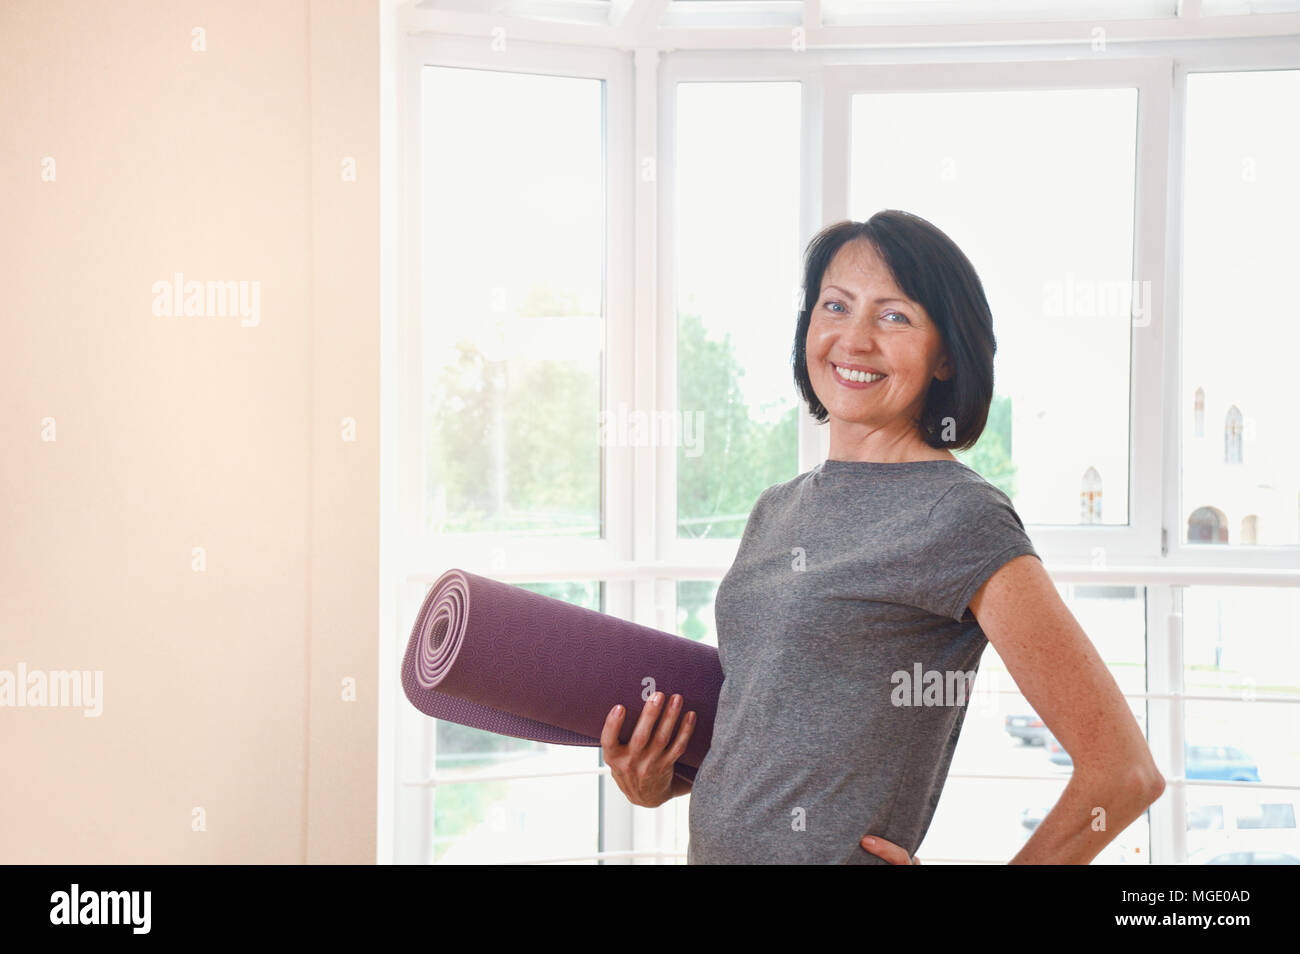 Mature woman holding rolled up exercise mat at gym. Cheerful female fitness instructor holding mat Stock Photo